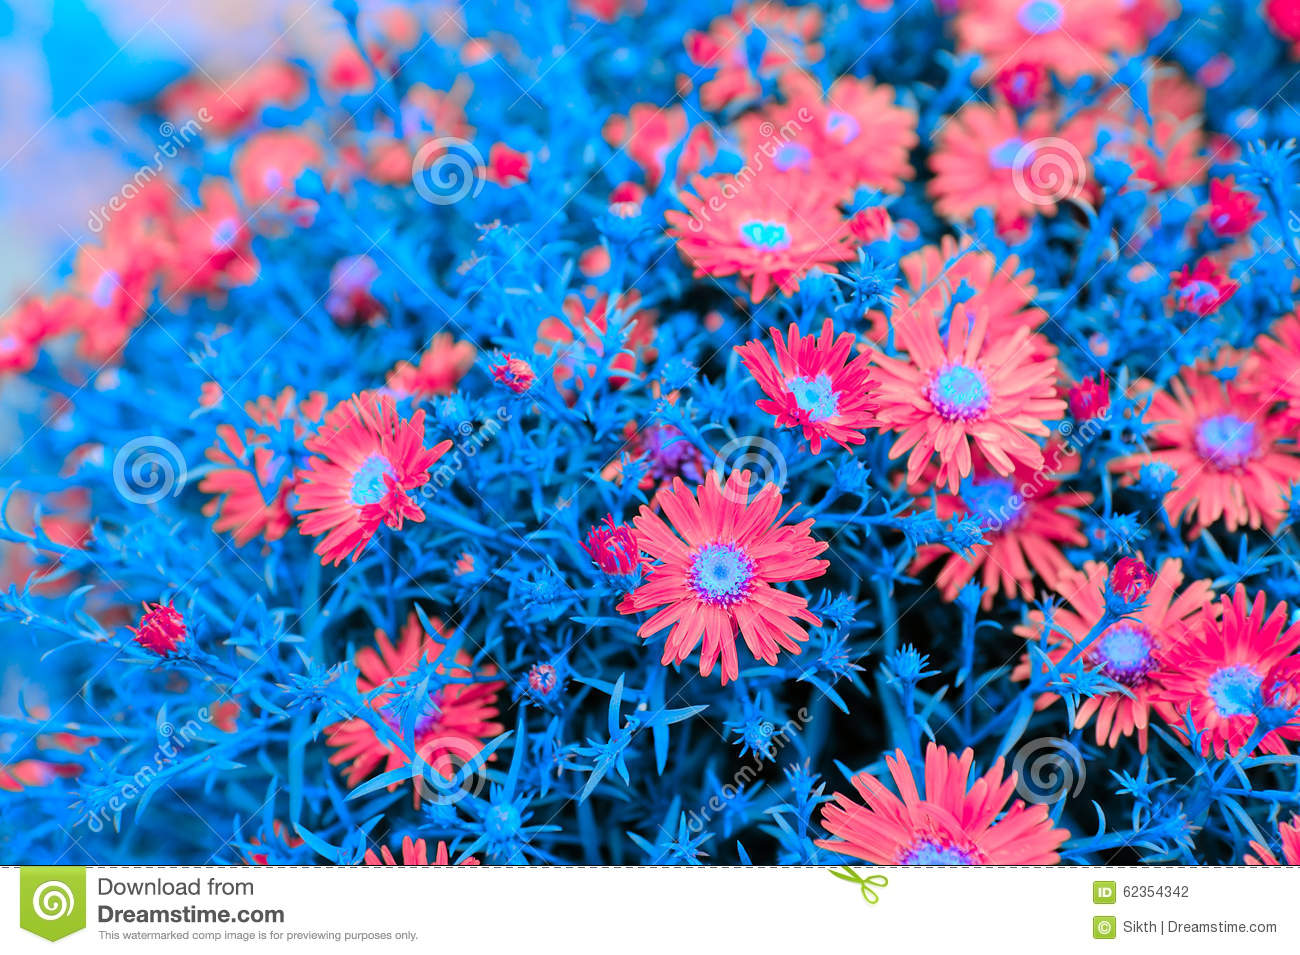 Creative New York Aster Flowers With Blue Leaves Stock Image